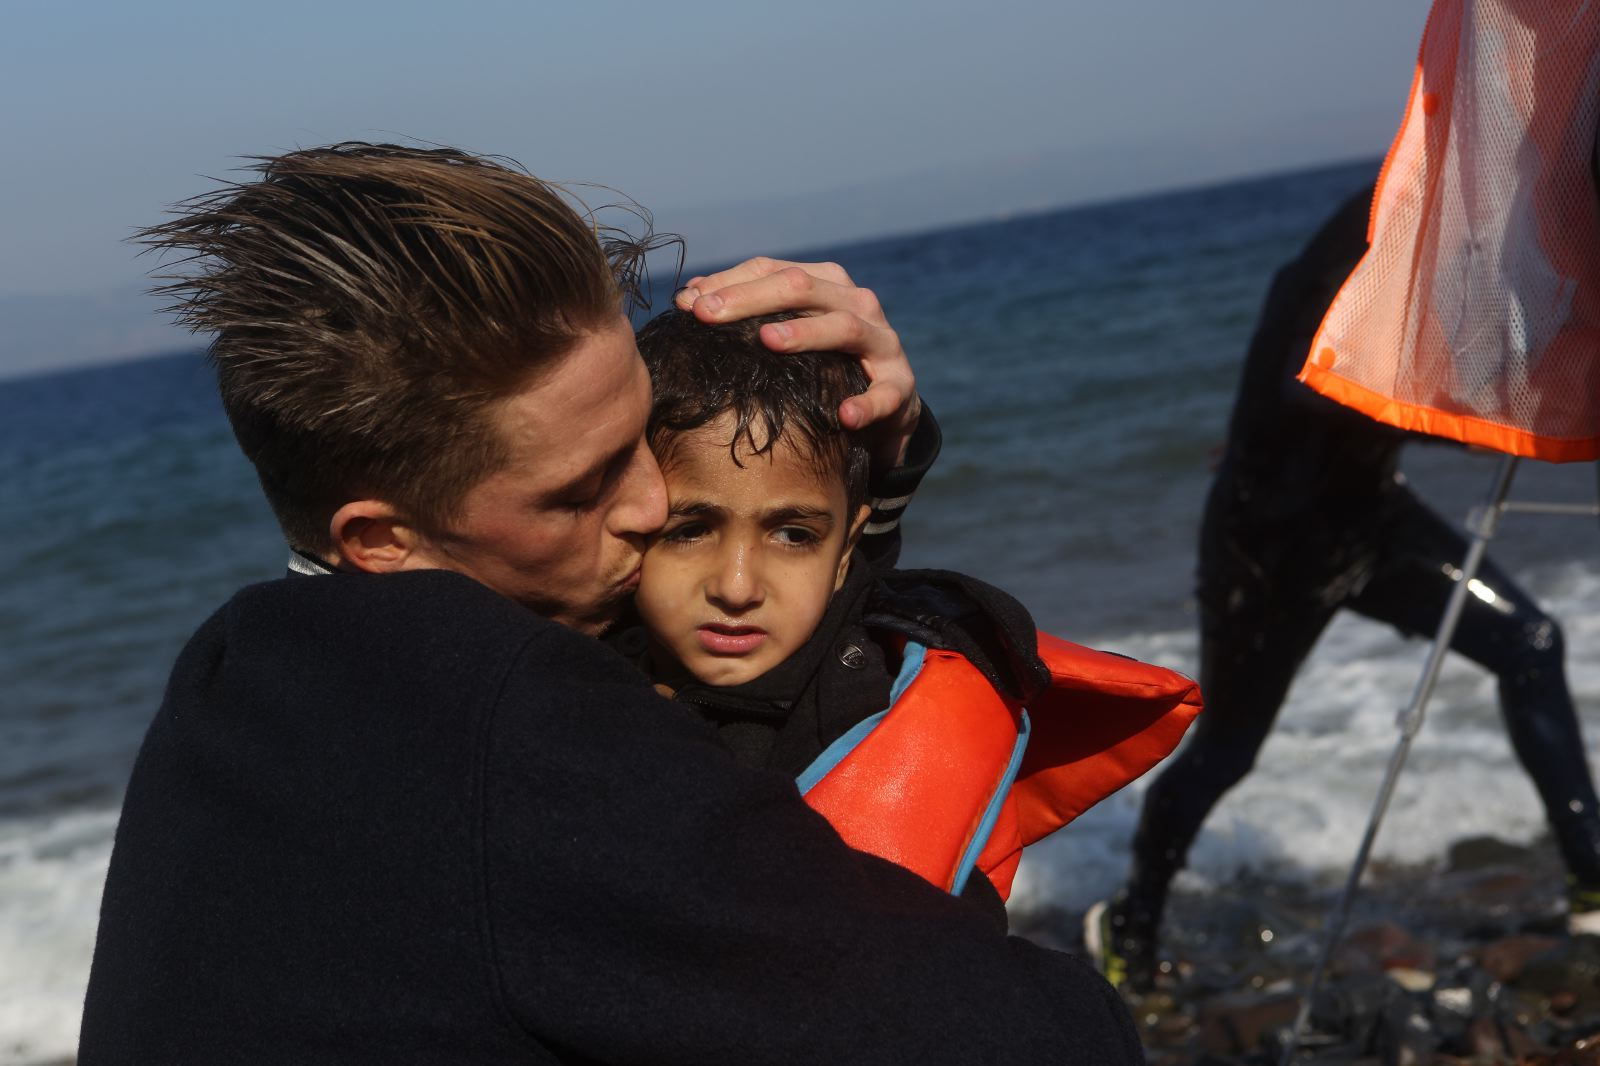 A father and son embrace after arriving in Lesbos, Greece.